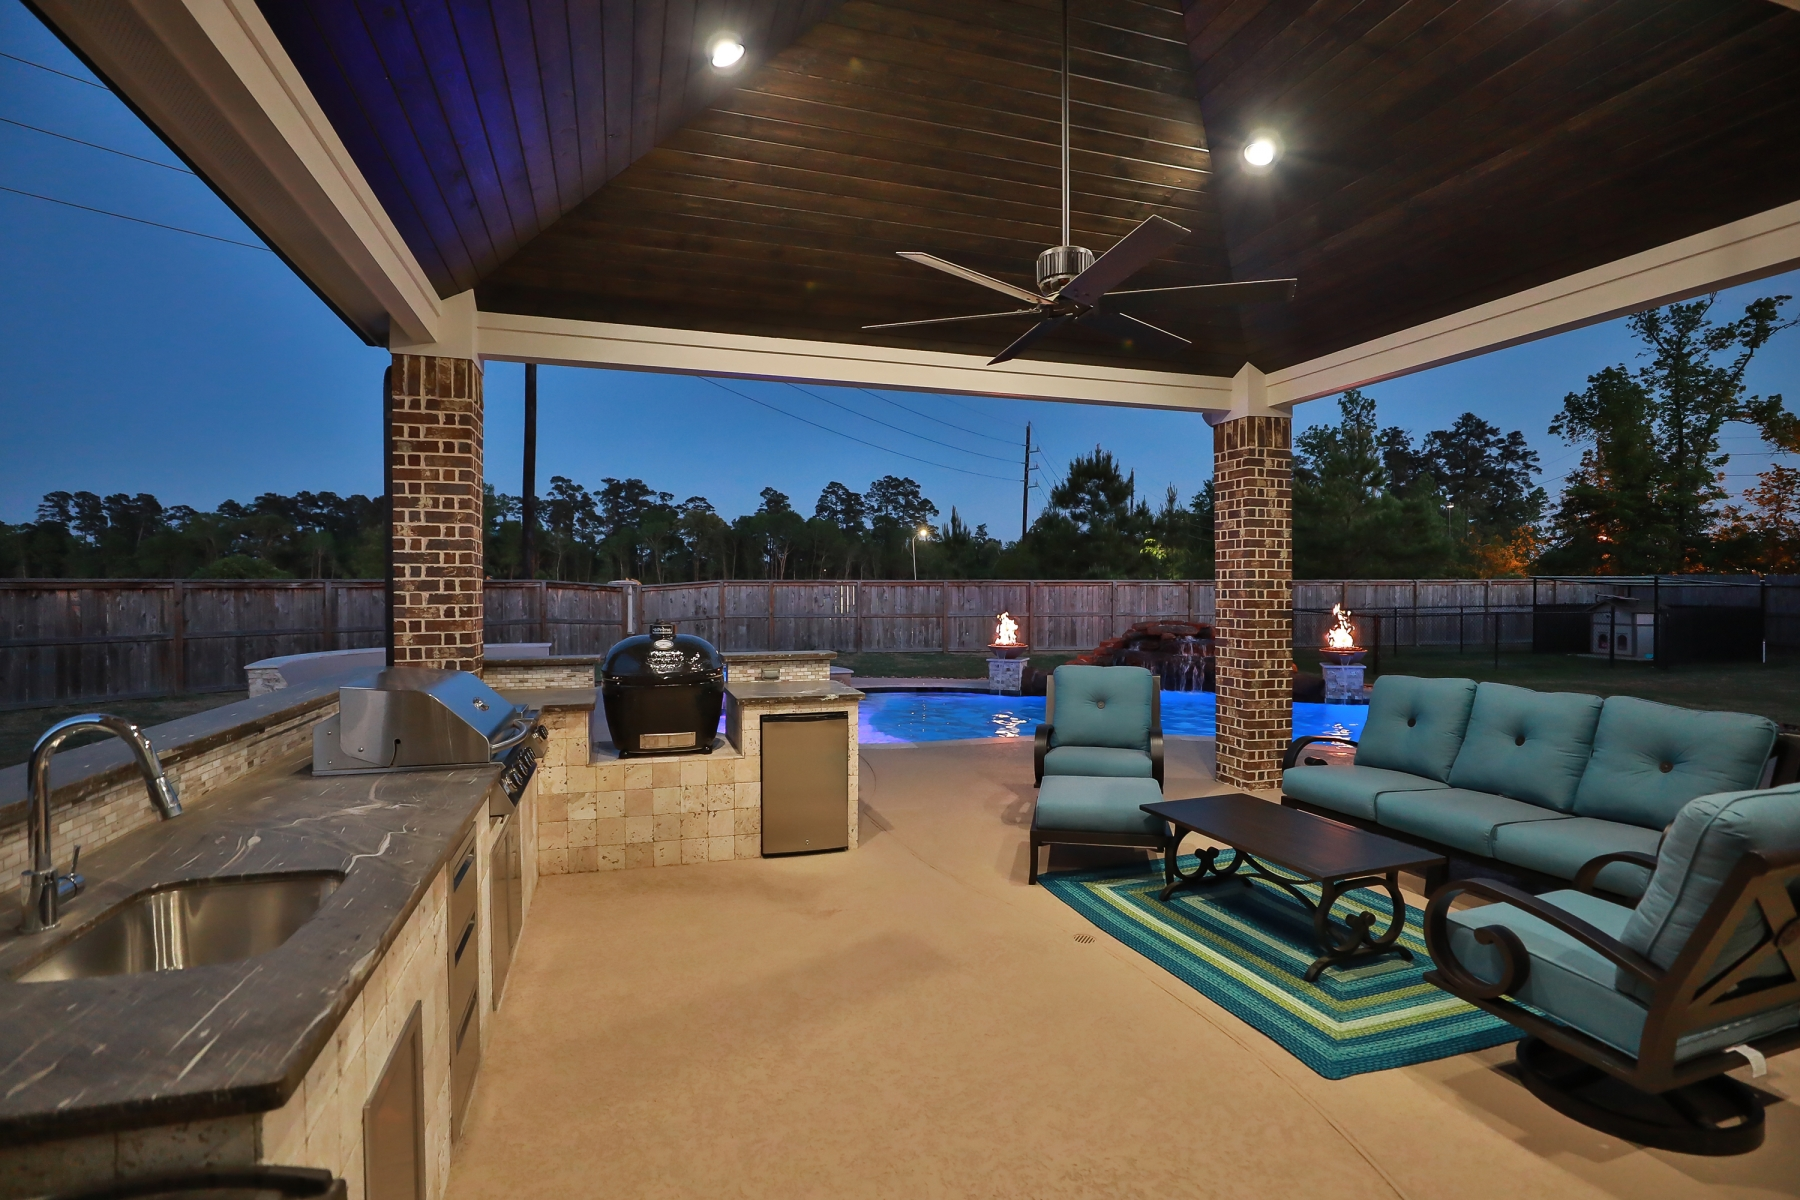 This New Pool & Backyard Will Blow You Away - Pool ... on Outdoor Kitchen With Covered Patio id=50258